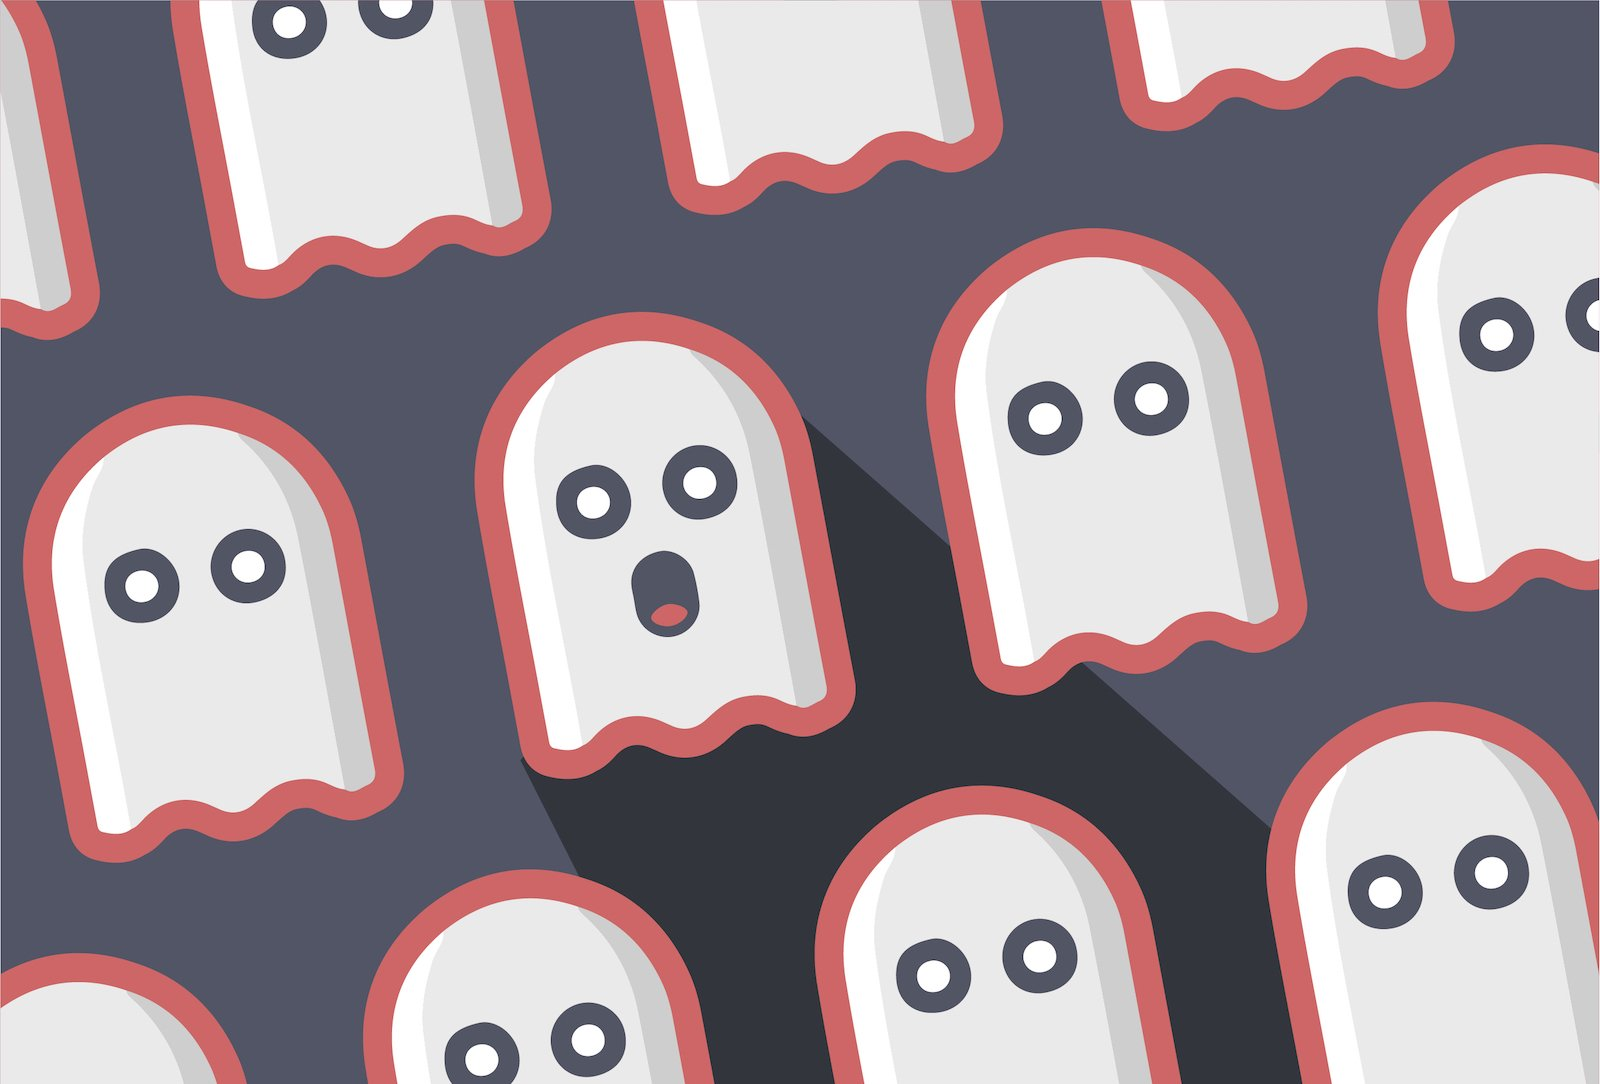 ghosting candidates